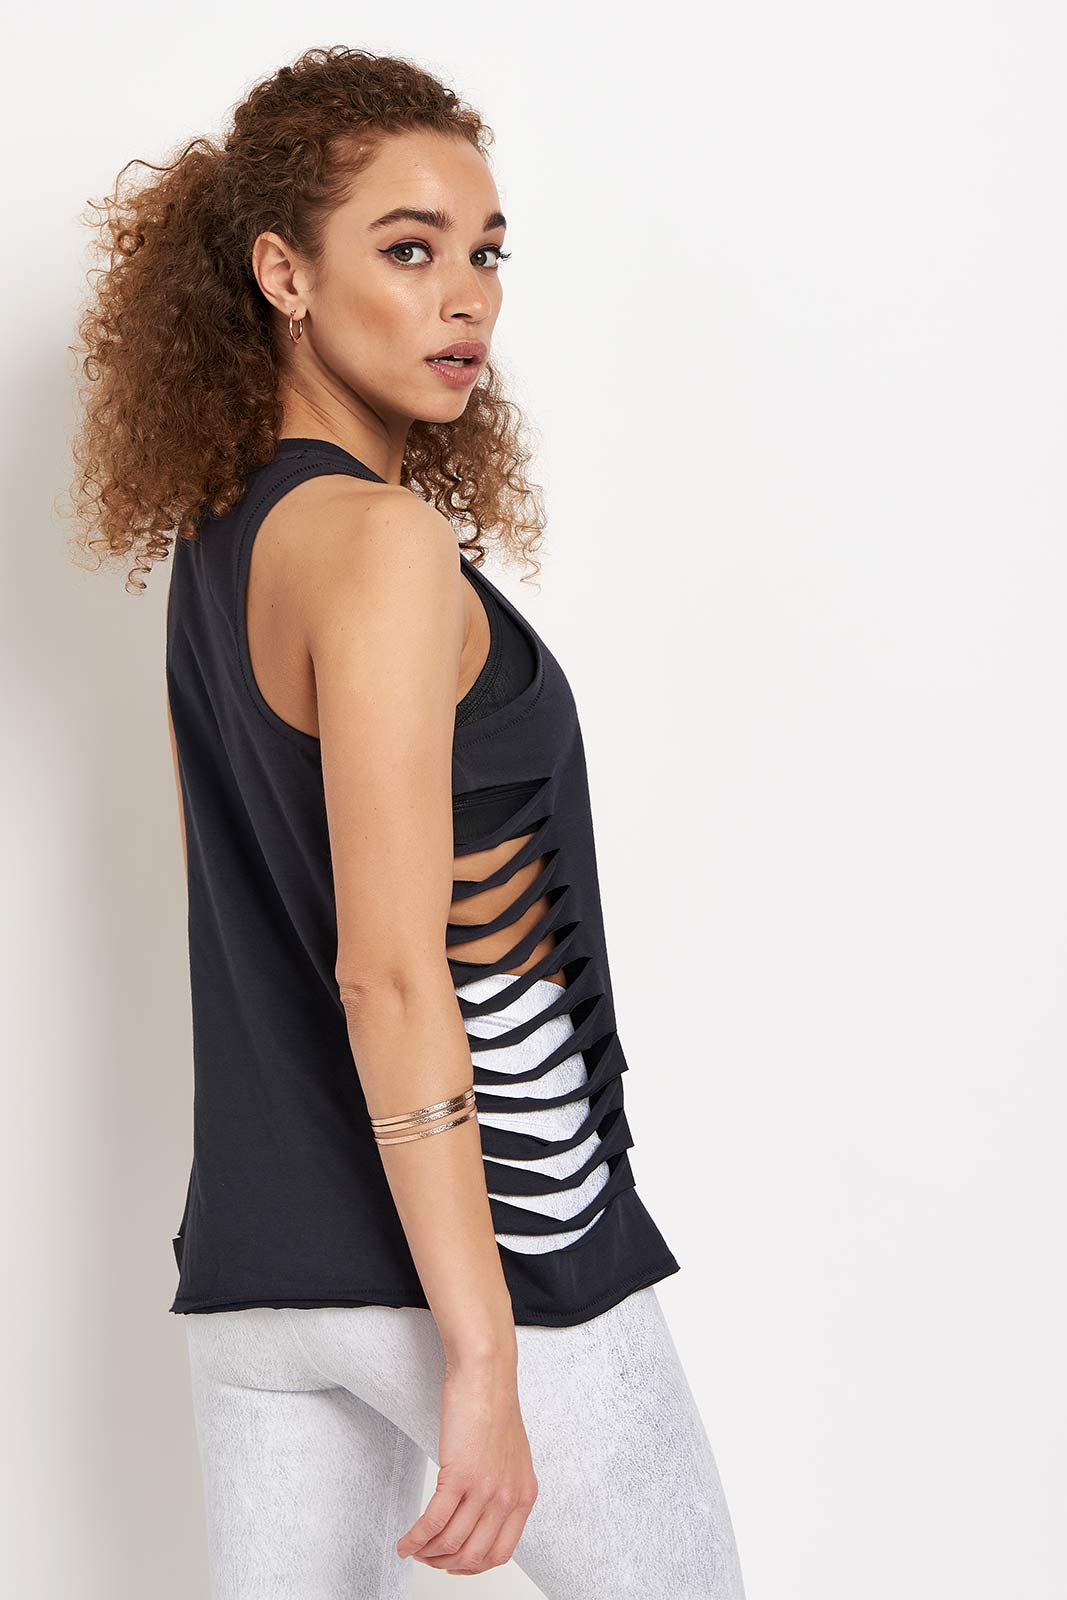 Alo Yoga Cut it Out Long Tank - Anthracite image 2 - The Sports Edit